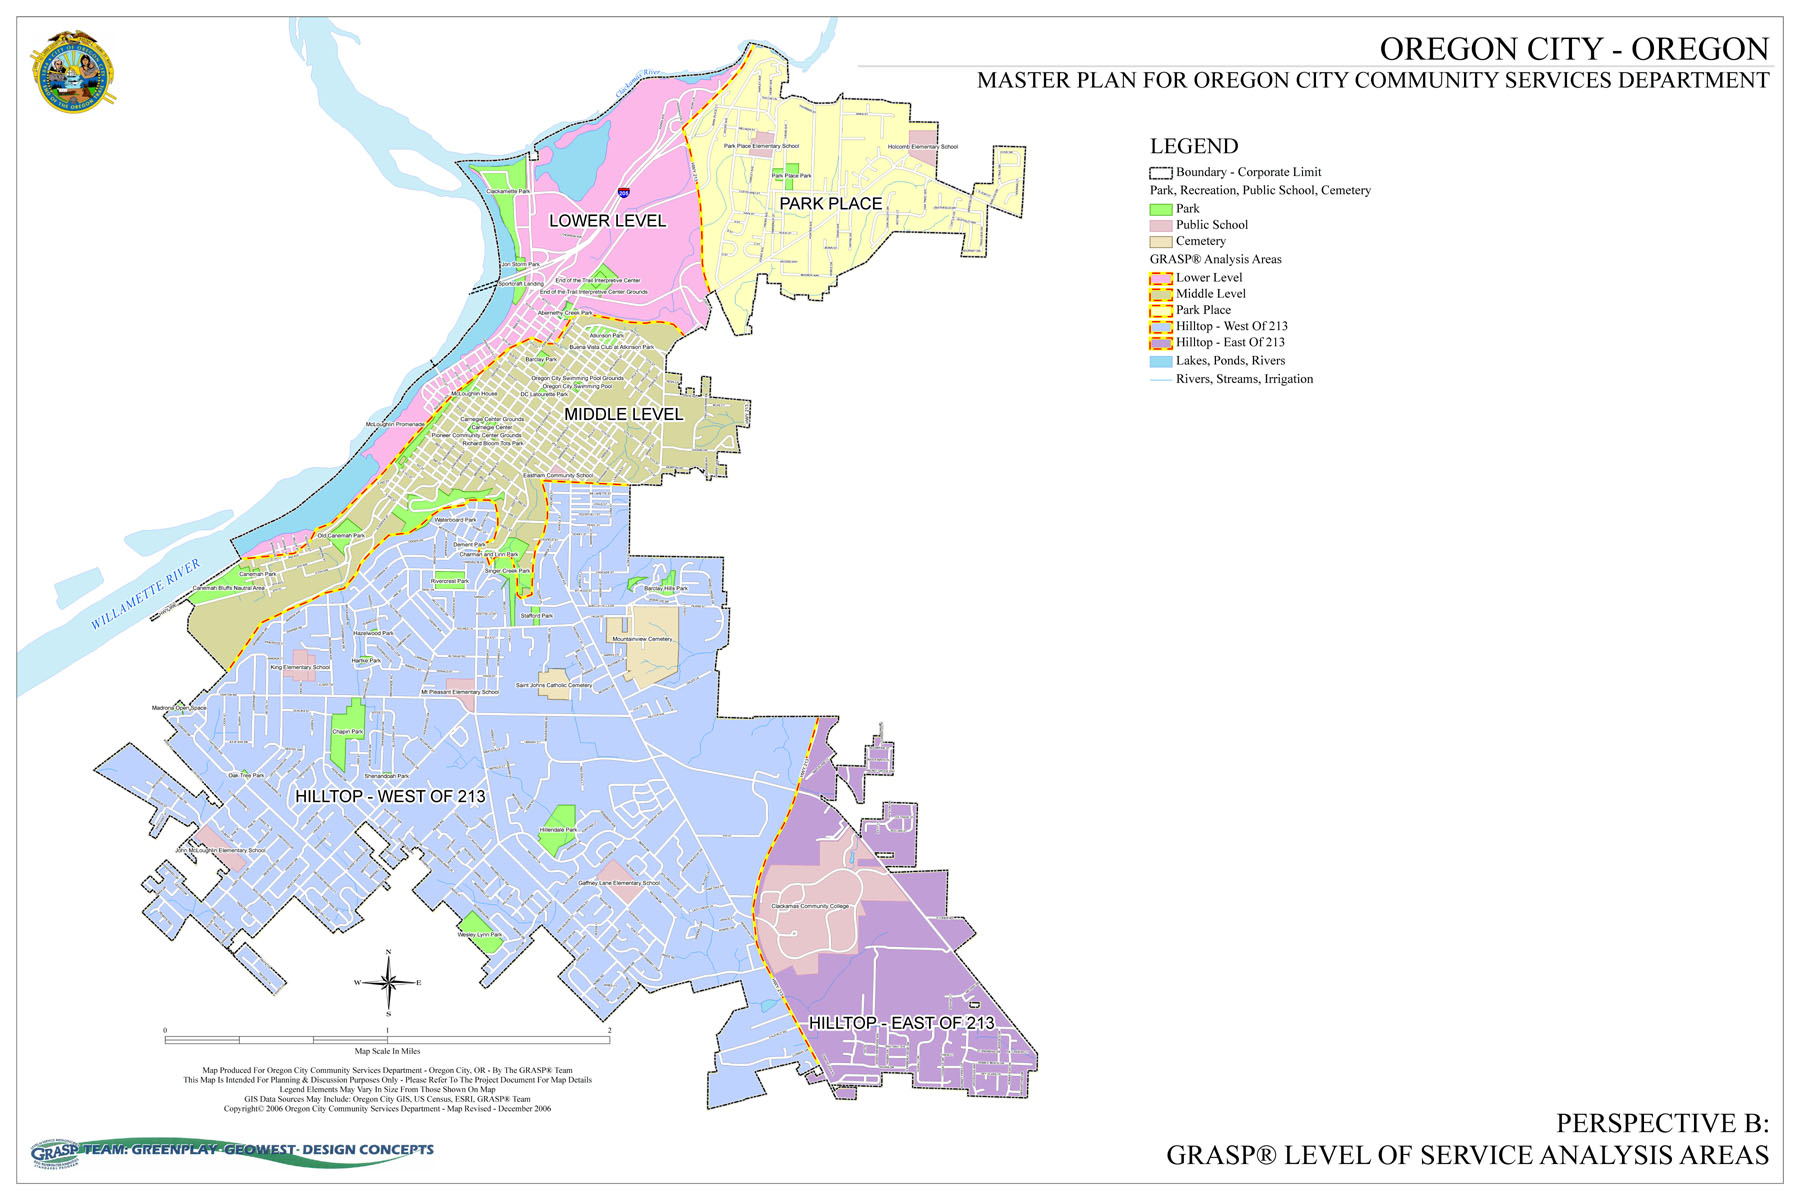 Parks and Recreation Master Plan Update City of Oregon City